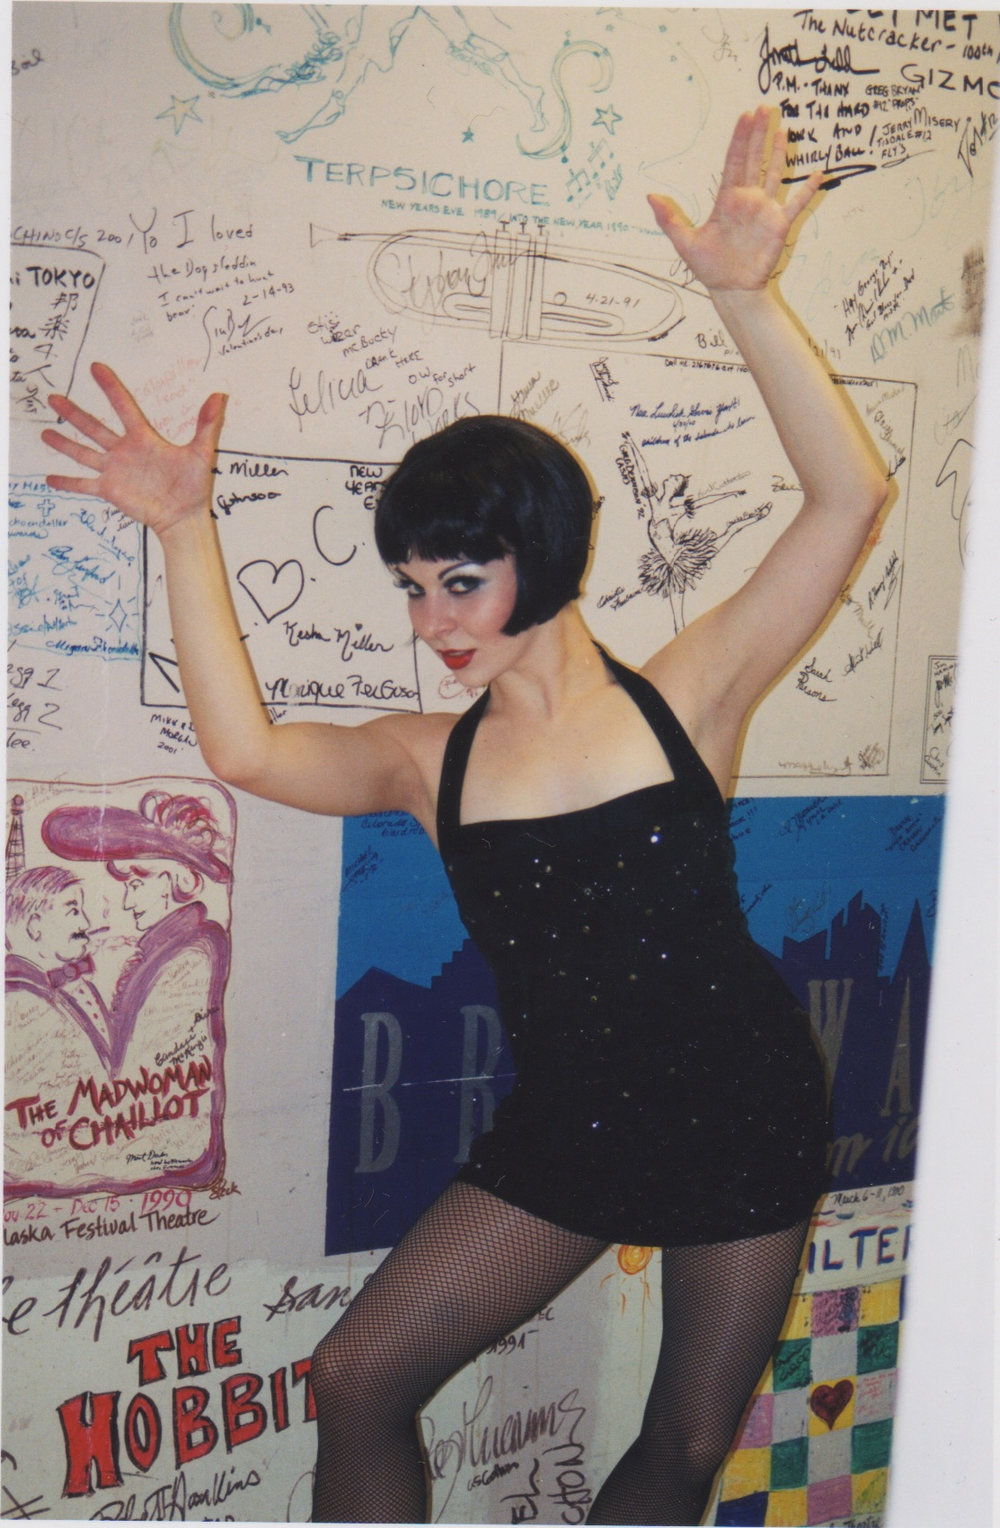 As Velma Kelly.